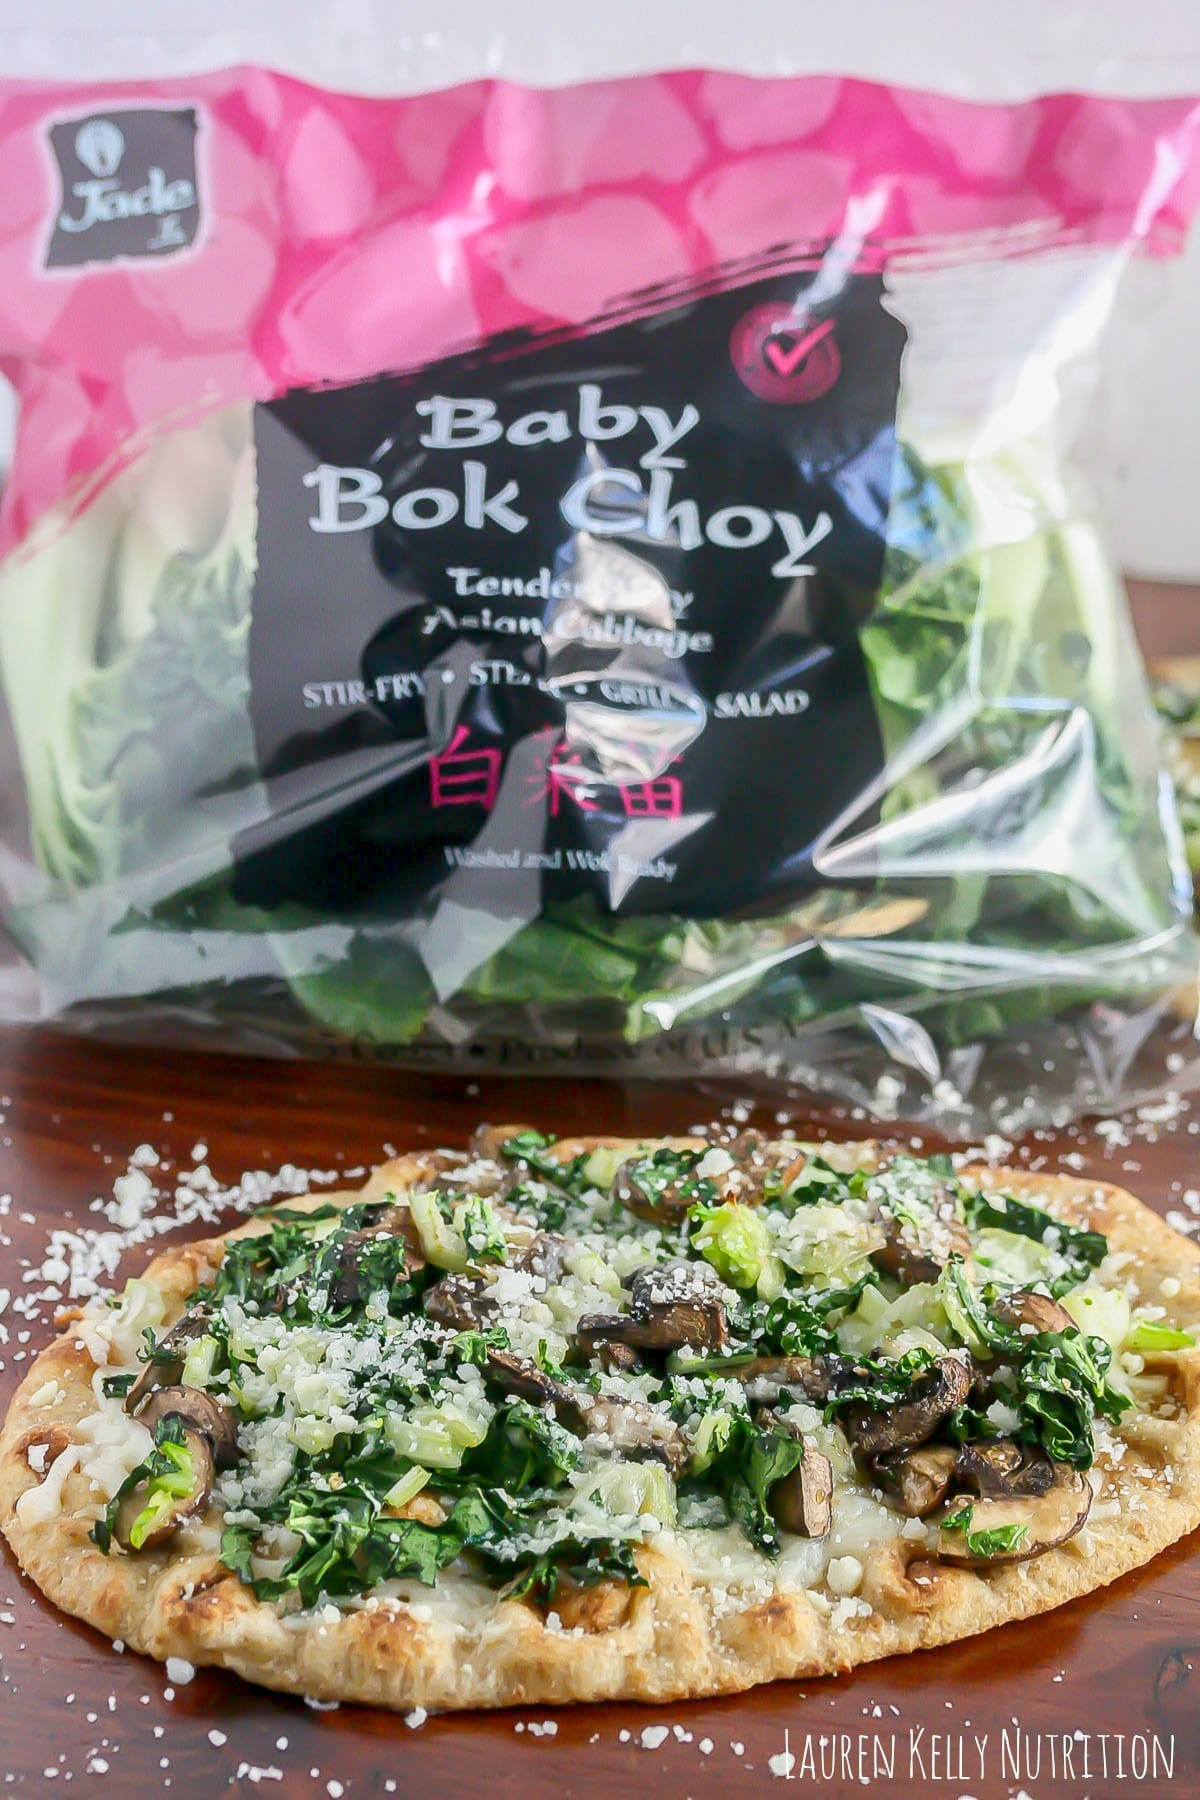 This Bok Choy Mushroom Pizza is light, crispy and packed with flavor! www.laurenkellynutrition.com